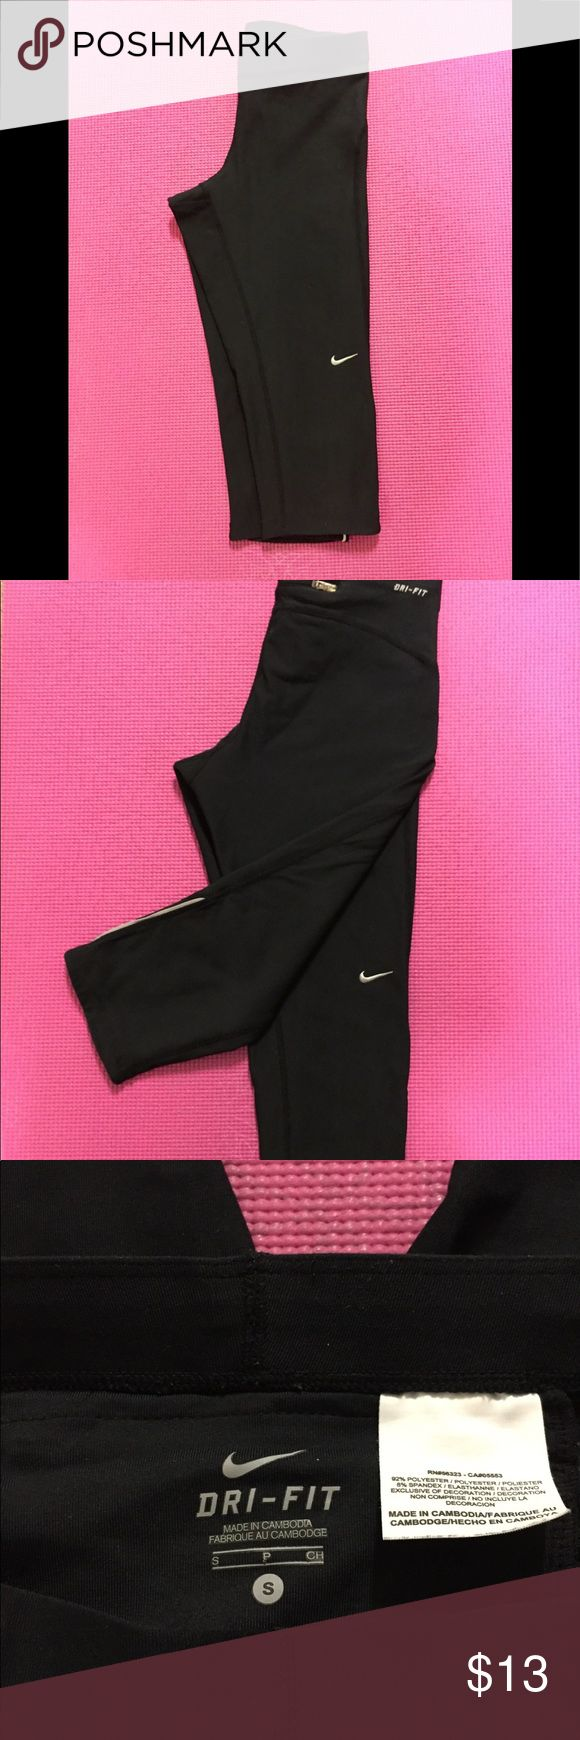 Nike Capri Running Tights Black Size Small Black Nike Capri Running Tights  Size Small  Reflective stripe on sides Zippered deep pocket on back Good pre-owned condition Nike Pants Track Pants & Joggers